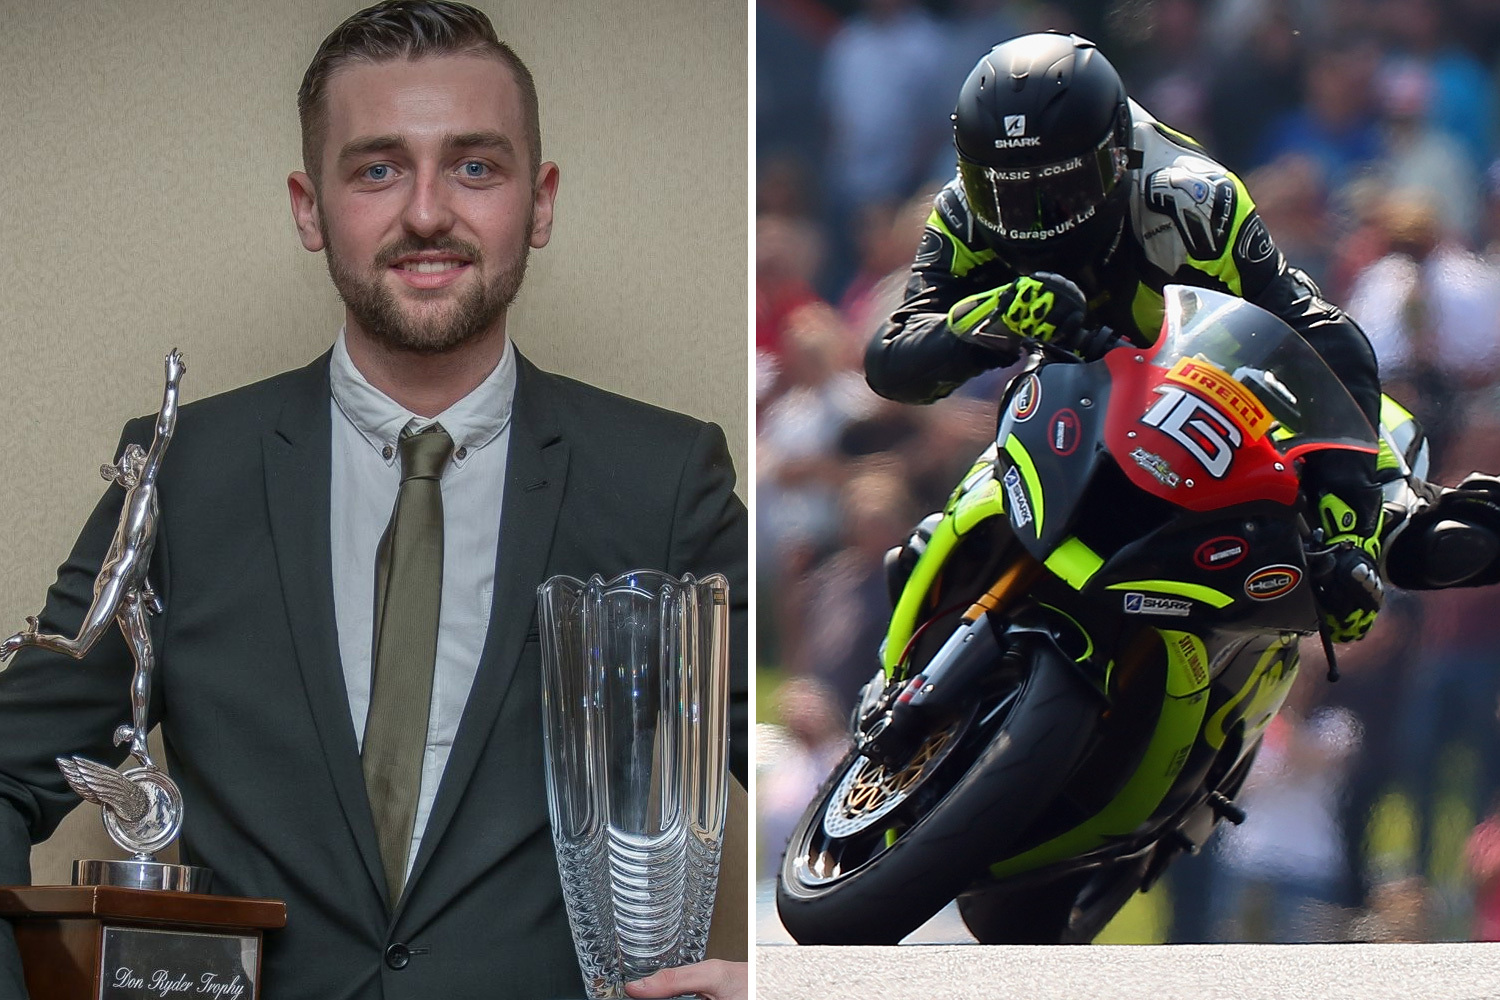 British Superbike star, Ben Godfrey dies in tragic crash at the age of 25